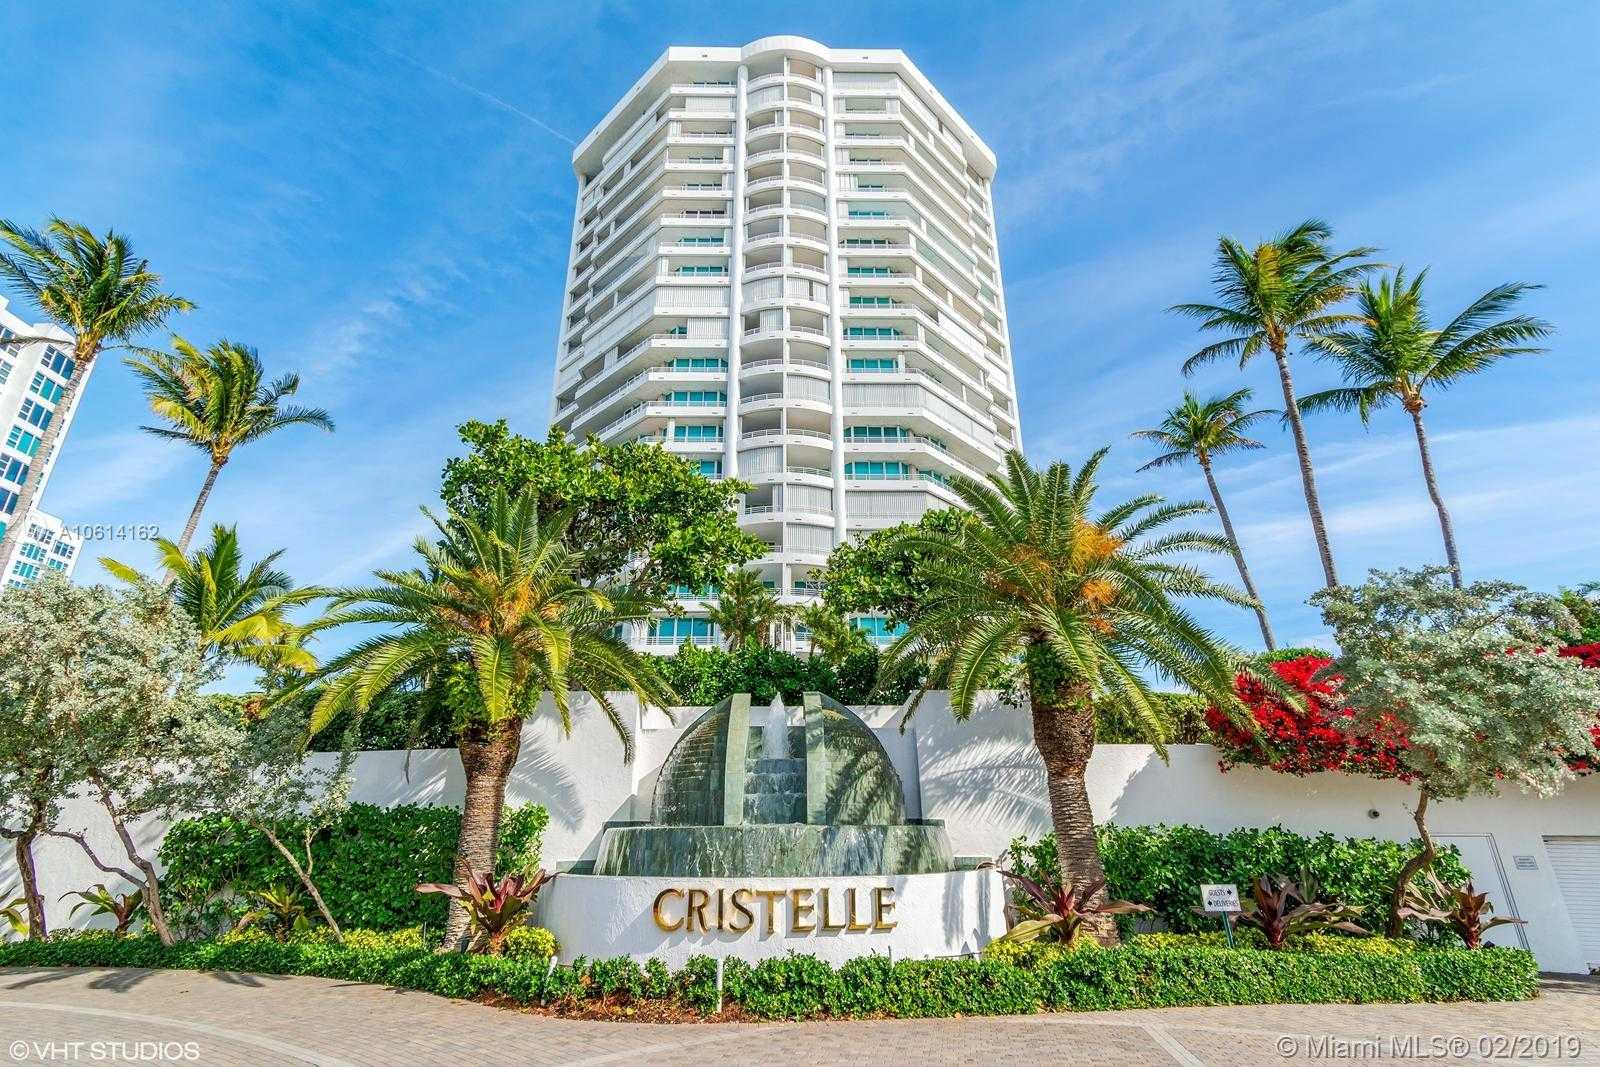 $1,750,000 - 3Br/3Ba -  for Sale in Cristelle A Condo, Lauderdale By The Sea